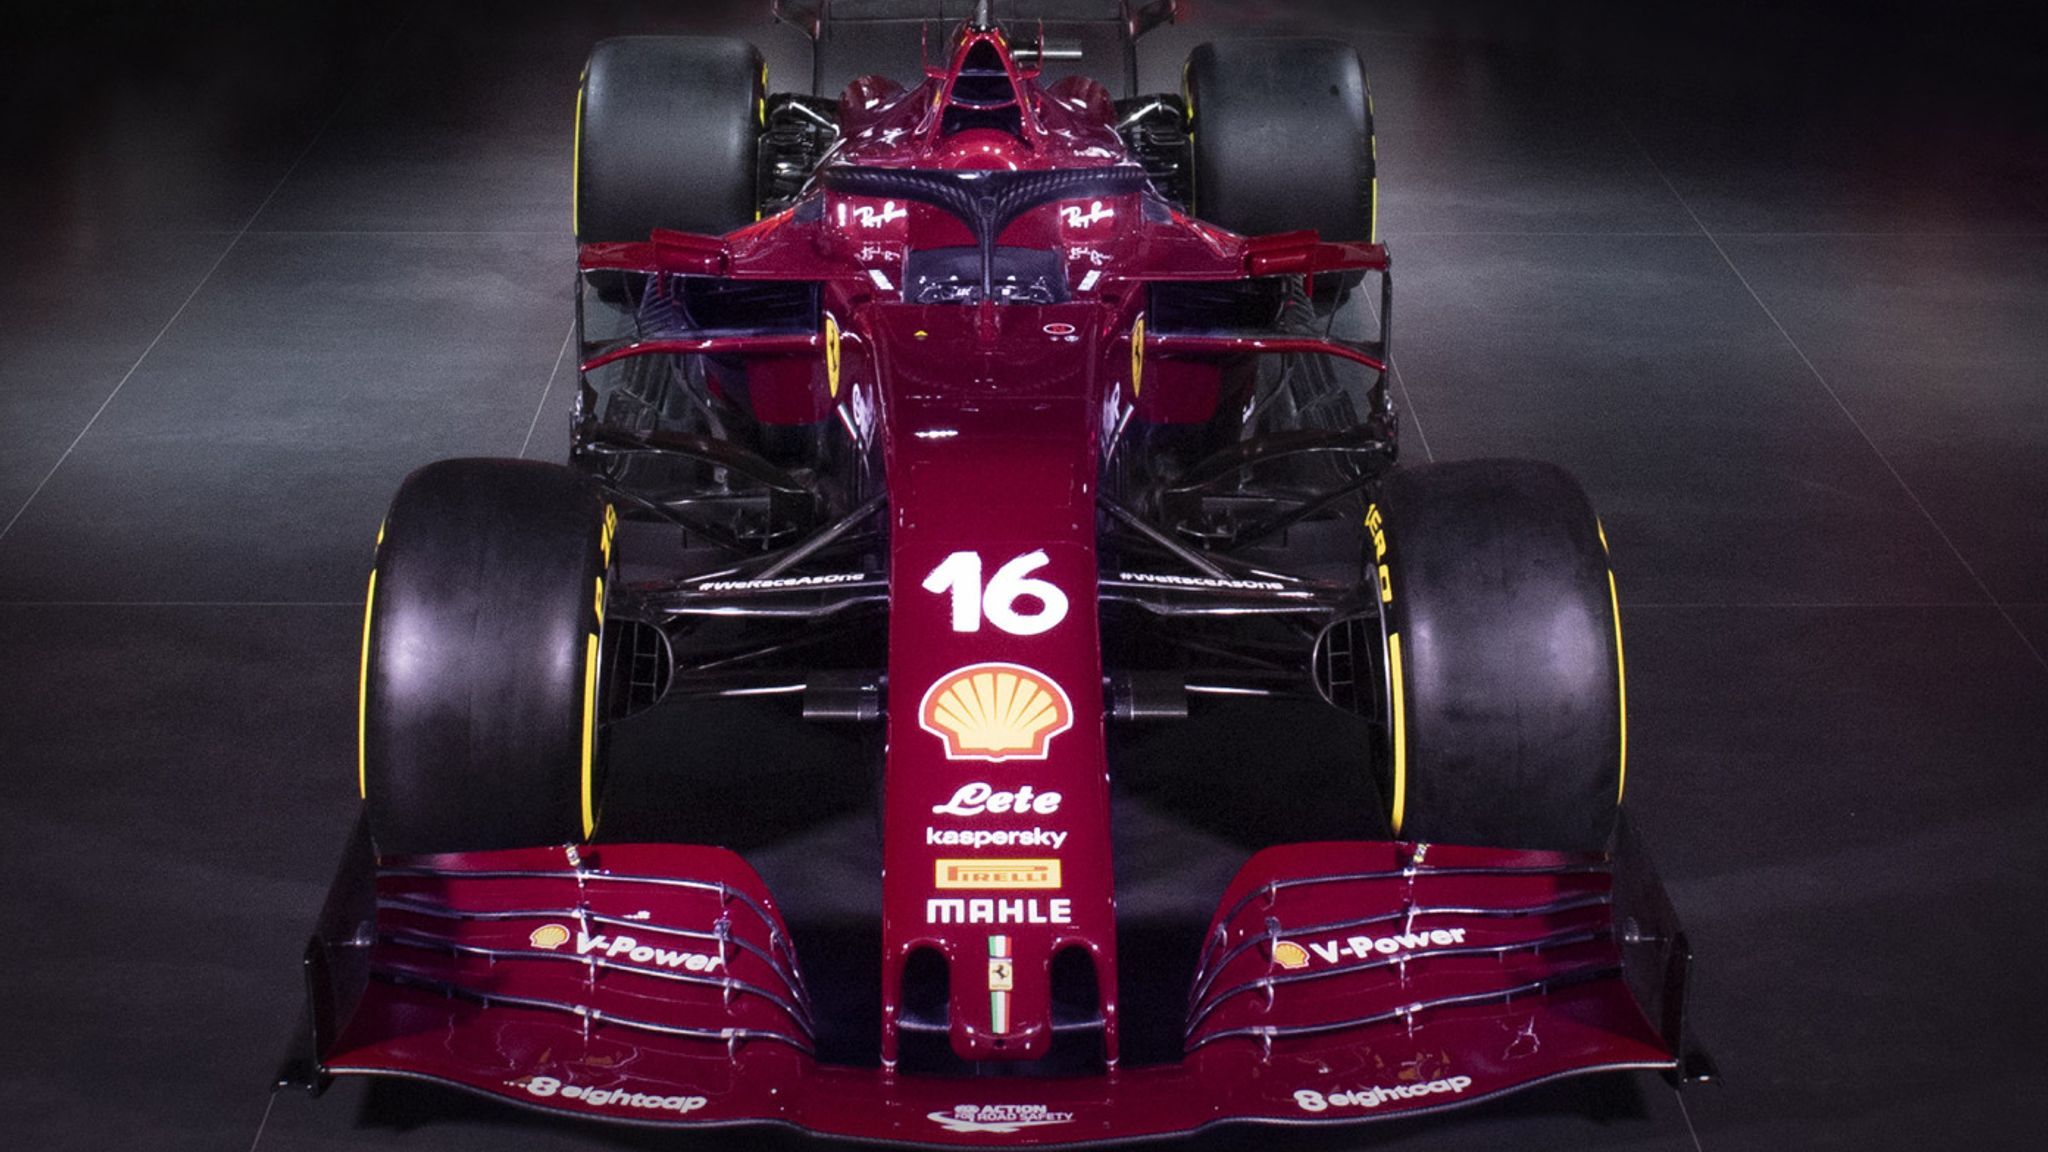 Ferrari To Run In Classic Burgundy Livery For 1000th Race At Tuscan Gp F1 News